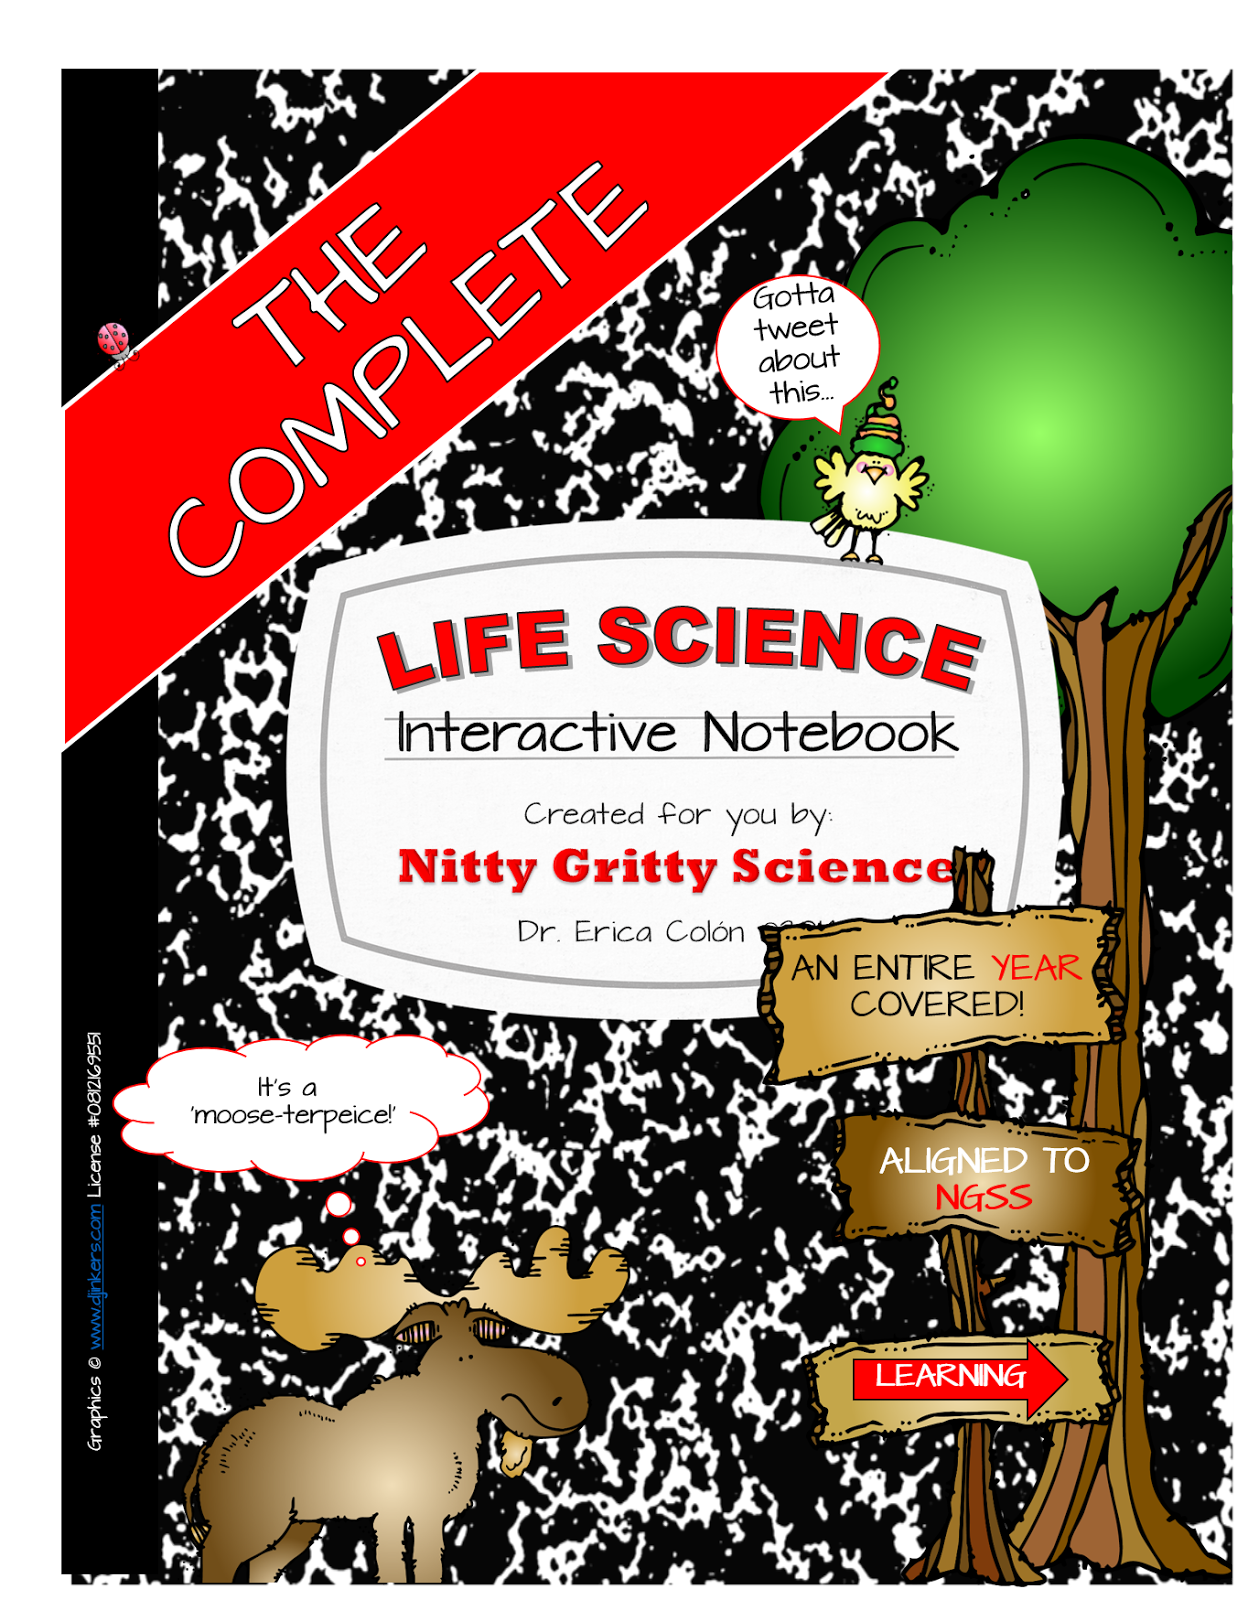 Science Interactive Notebook - Life Science